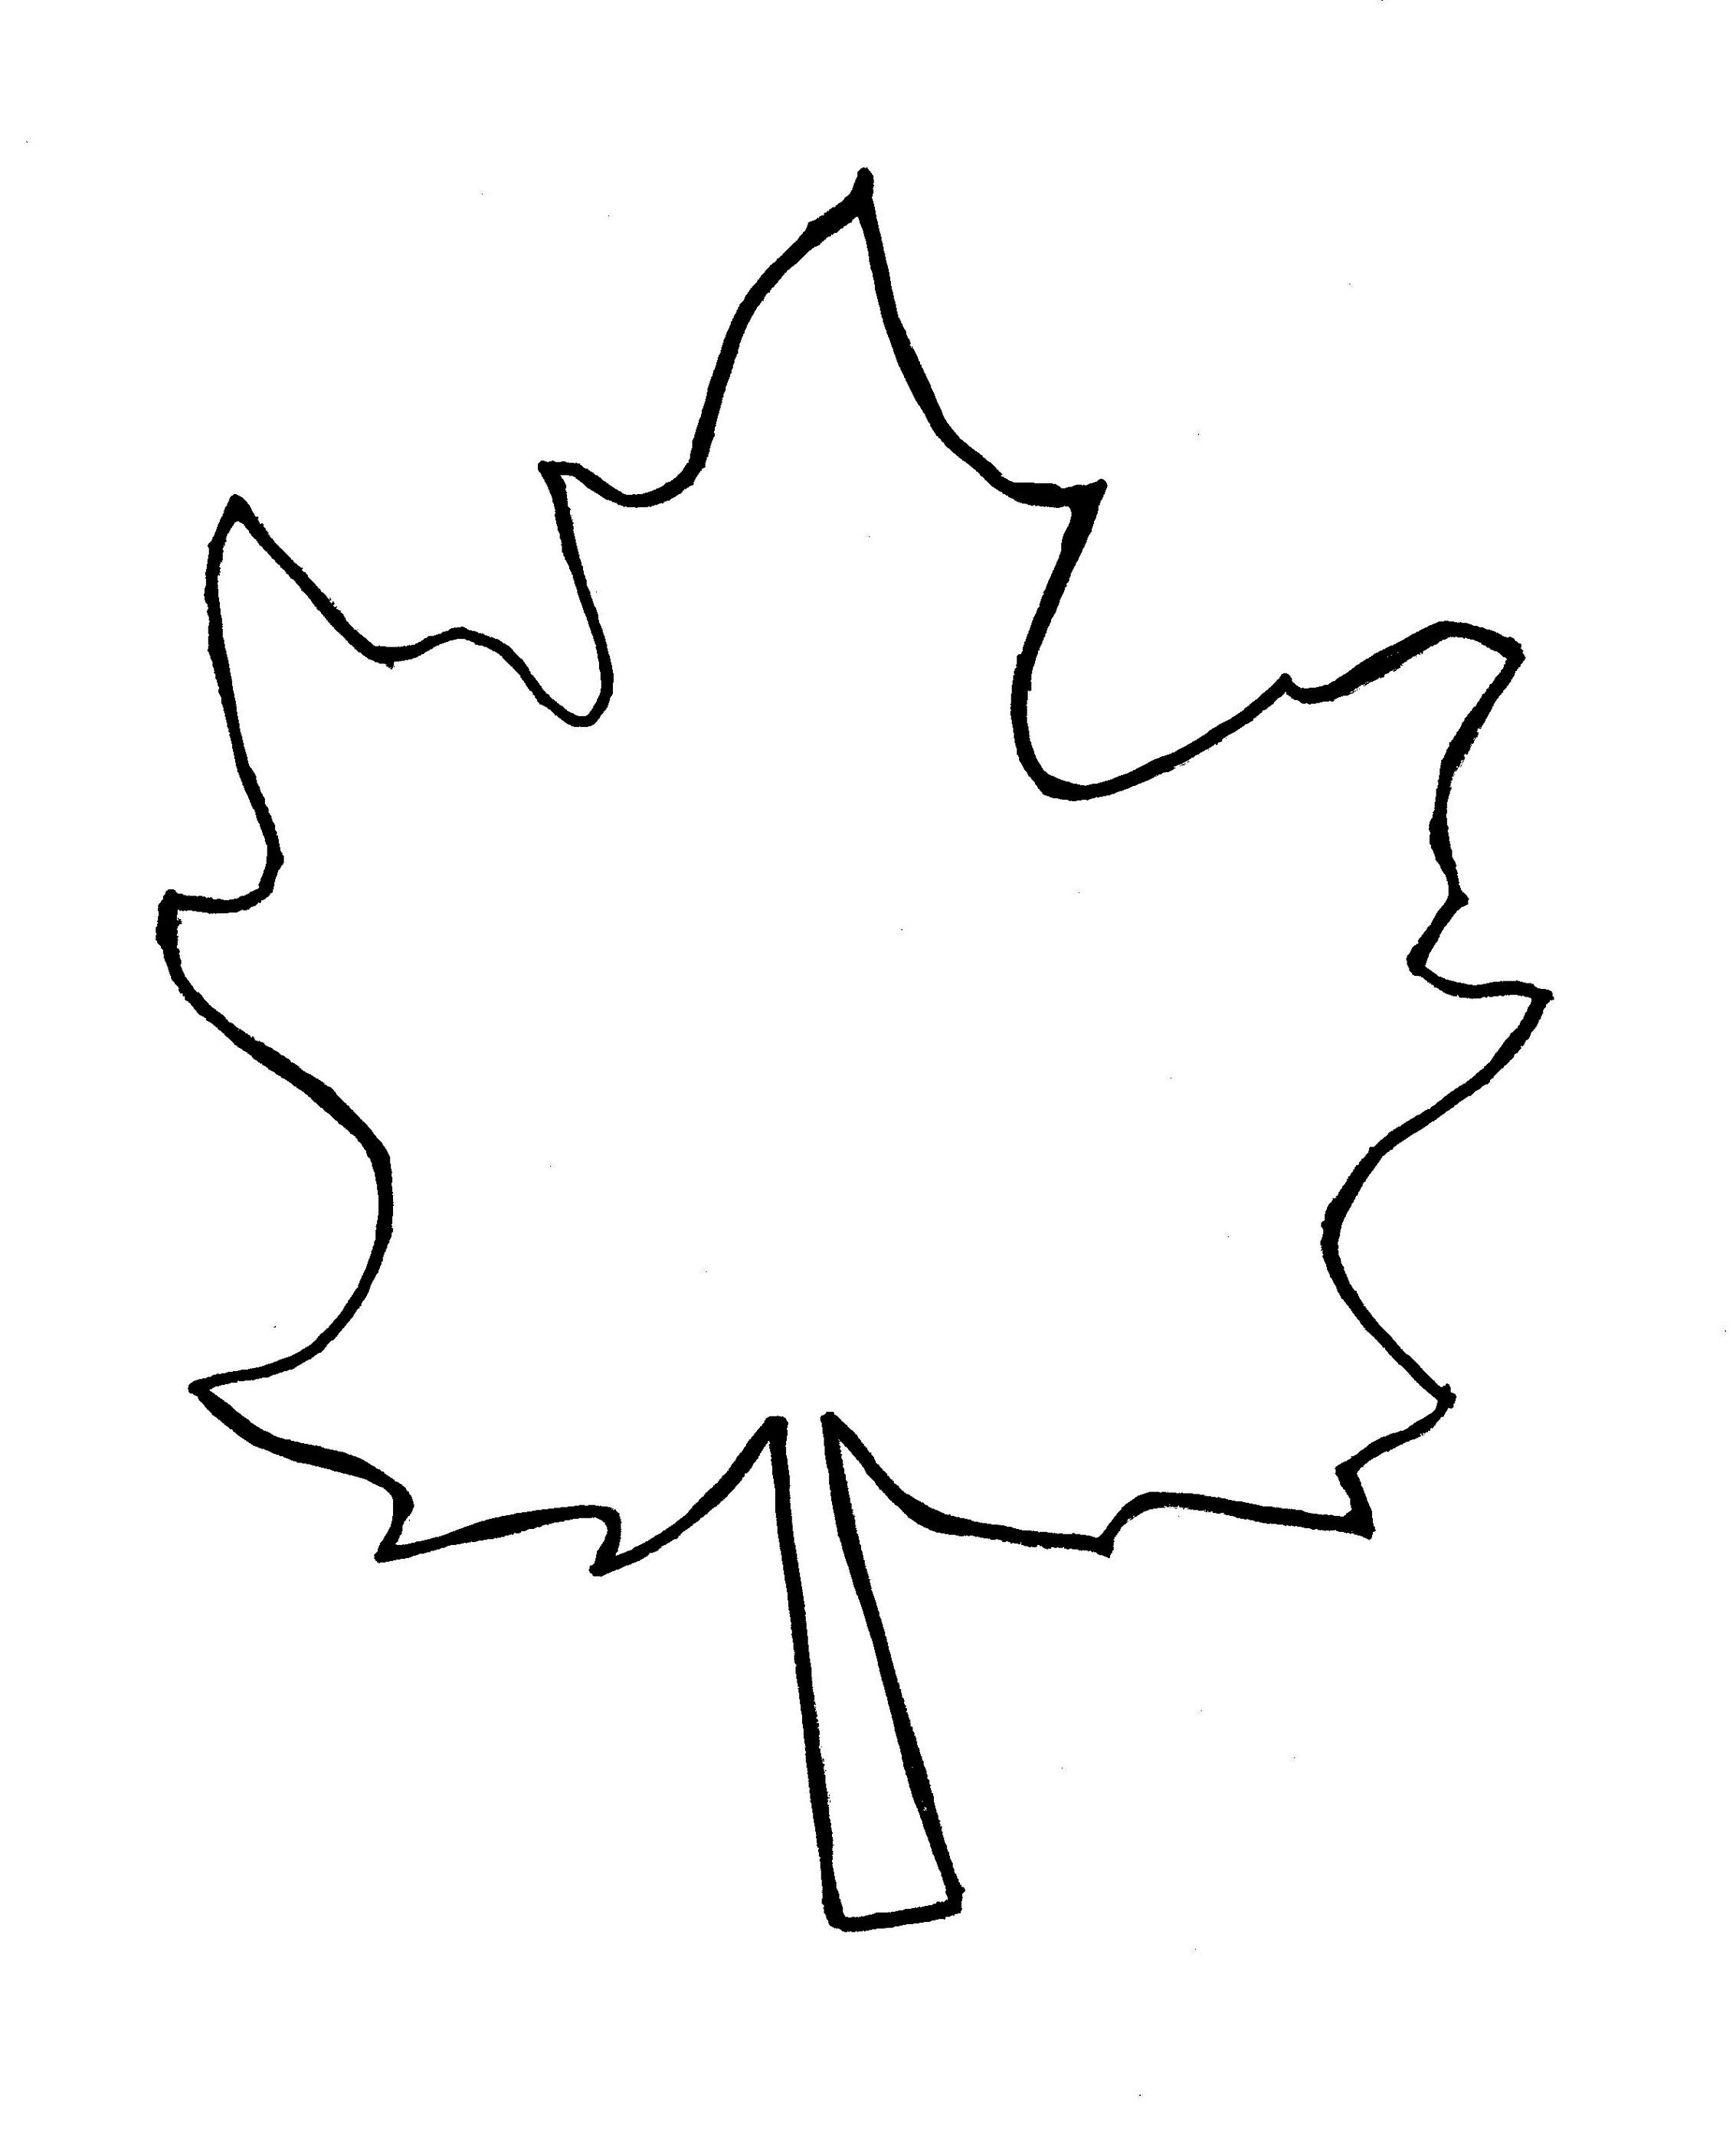 Autumn Leaf Outline Template Clipart Free To Use Clip Art Resource 2 Leaf Coloring Page Tree Coloring Page Leaf Template